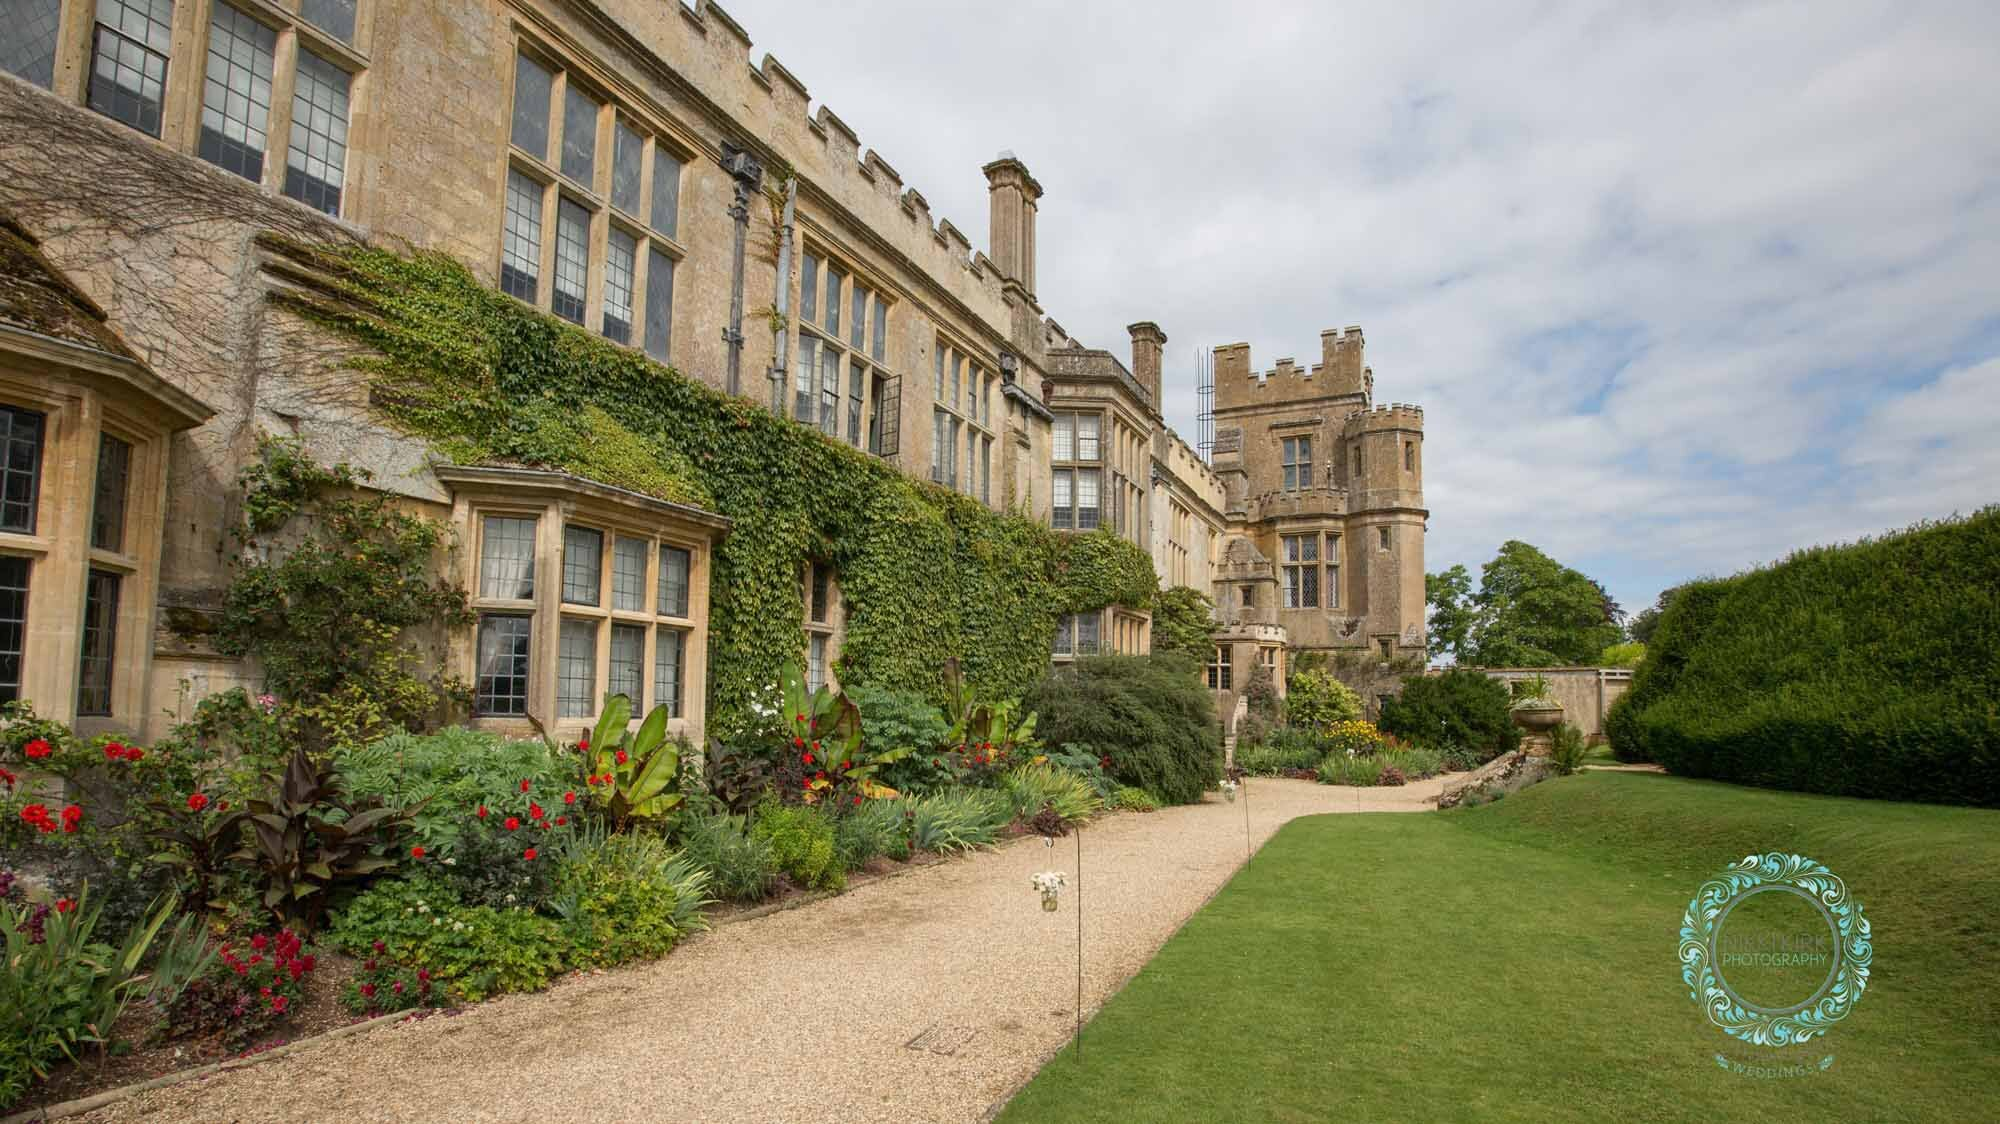 Sudeley-Castle-Cotswolds-婚礼获奖-婚礼策划师-Perfect-Perfection-40.jpg